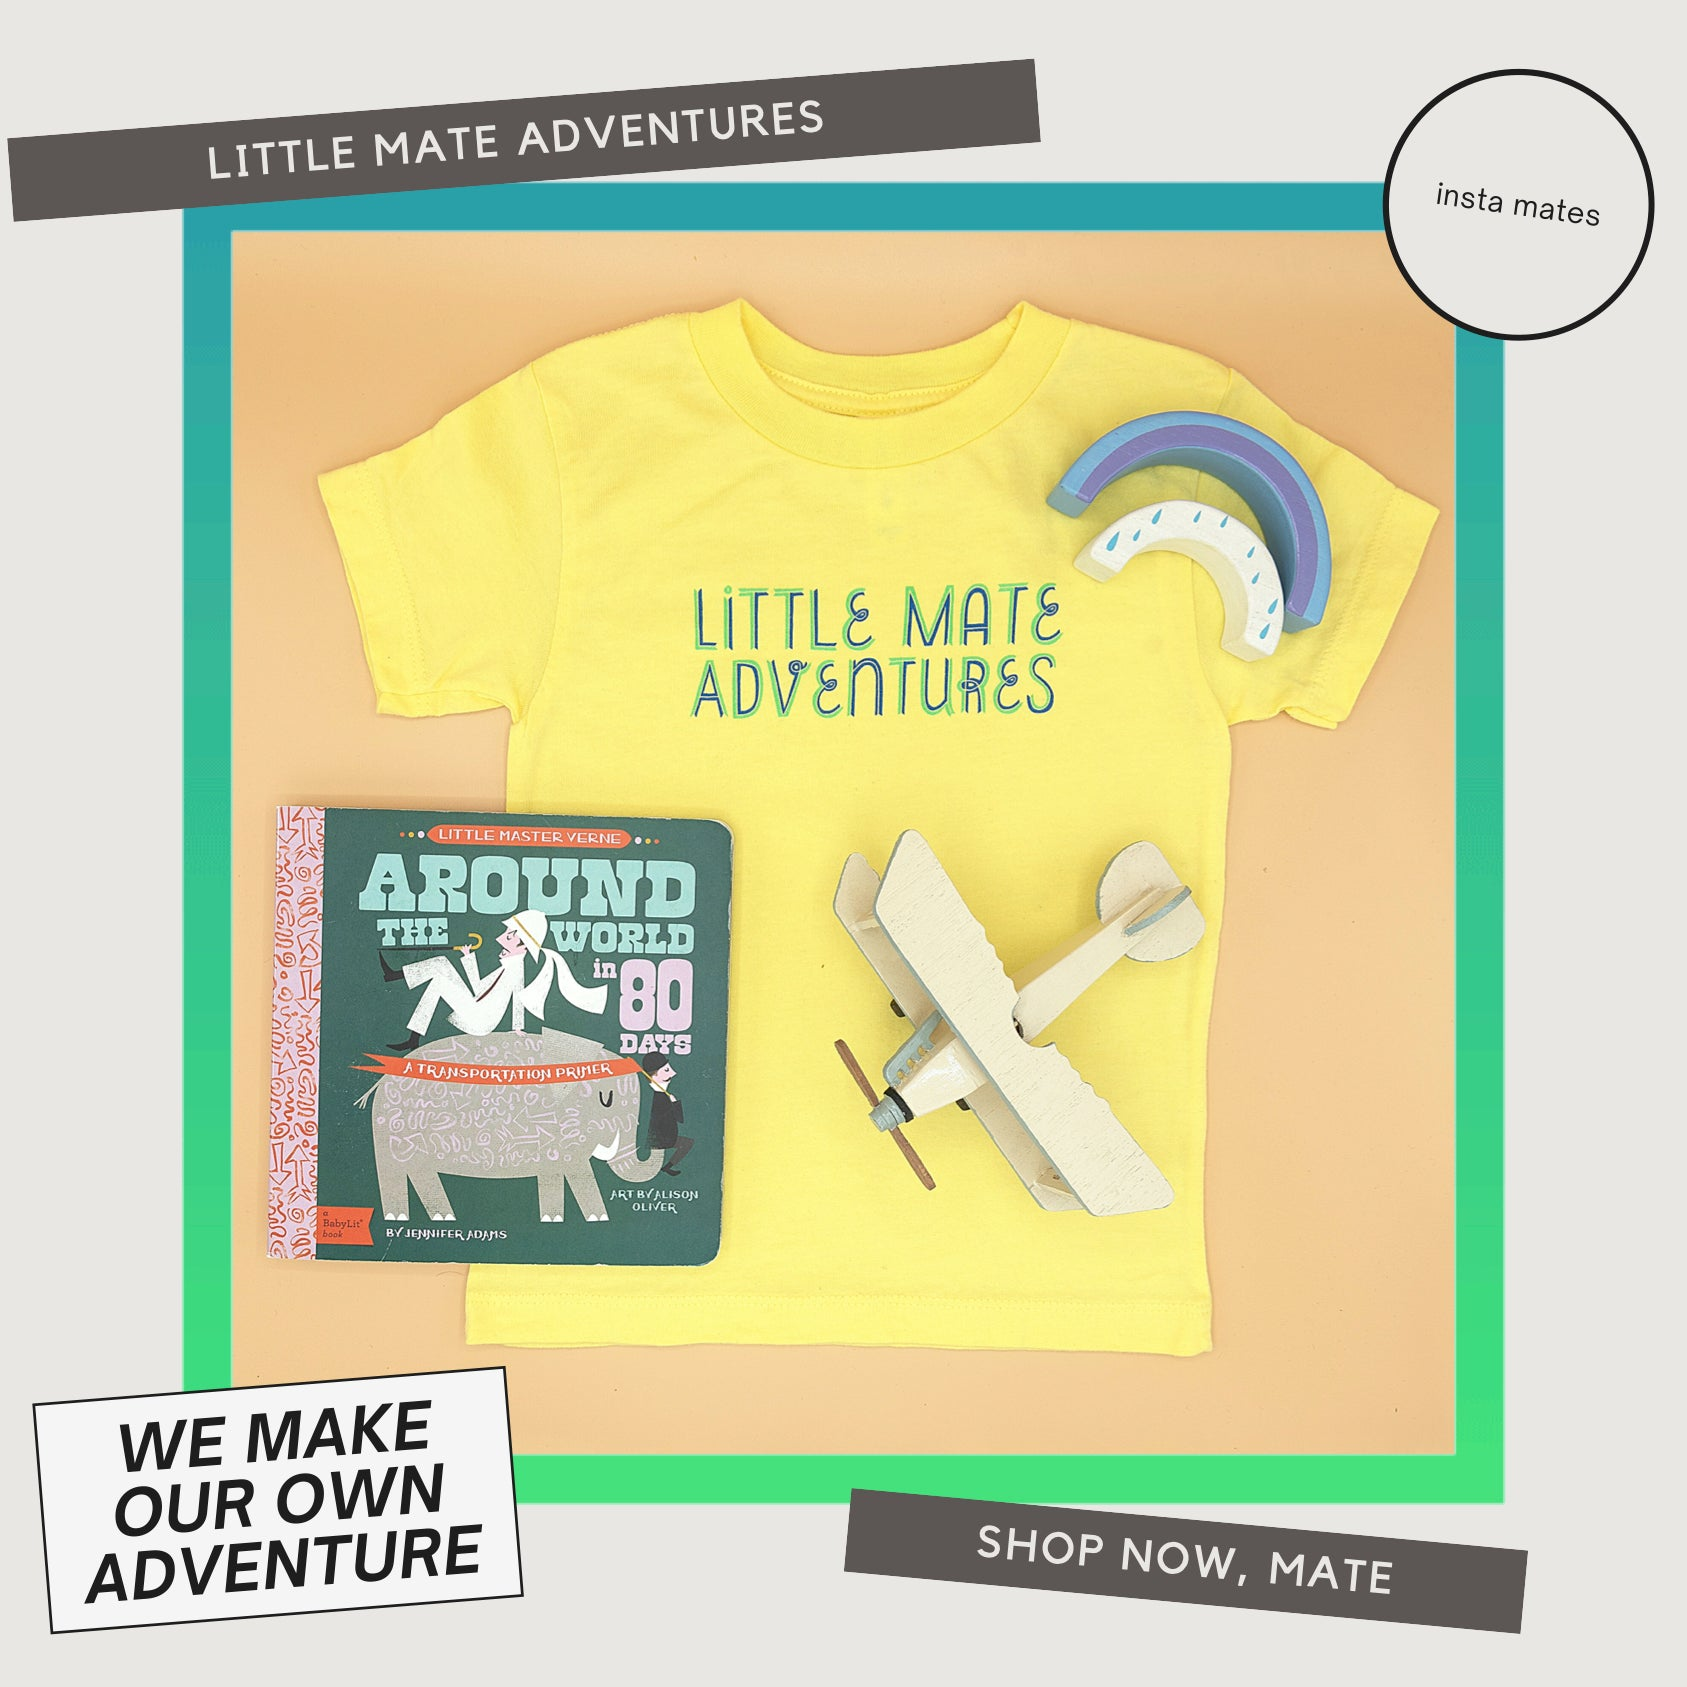 Little mate adventures logo t-shirt in bright yellow, available in baby, toddler, and youth sizing